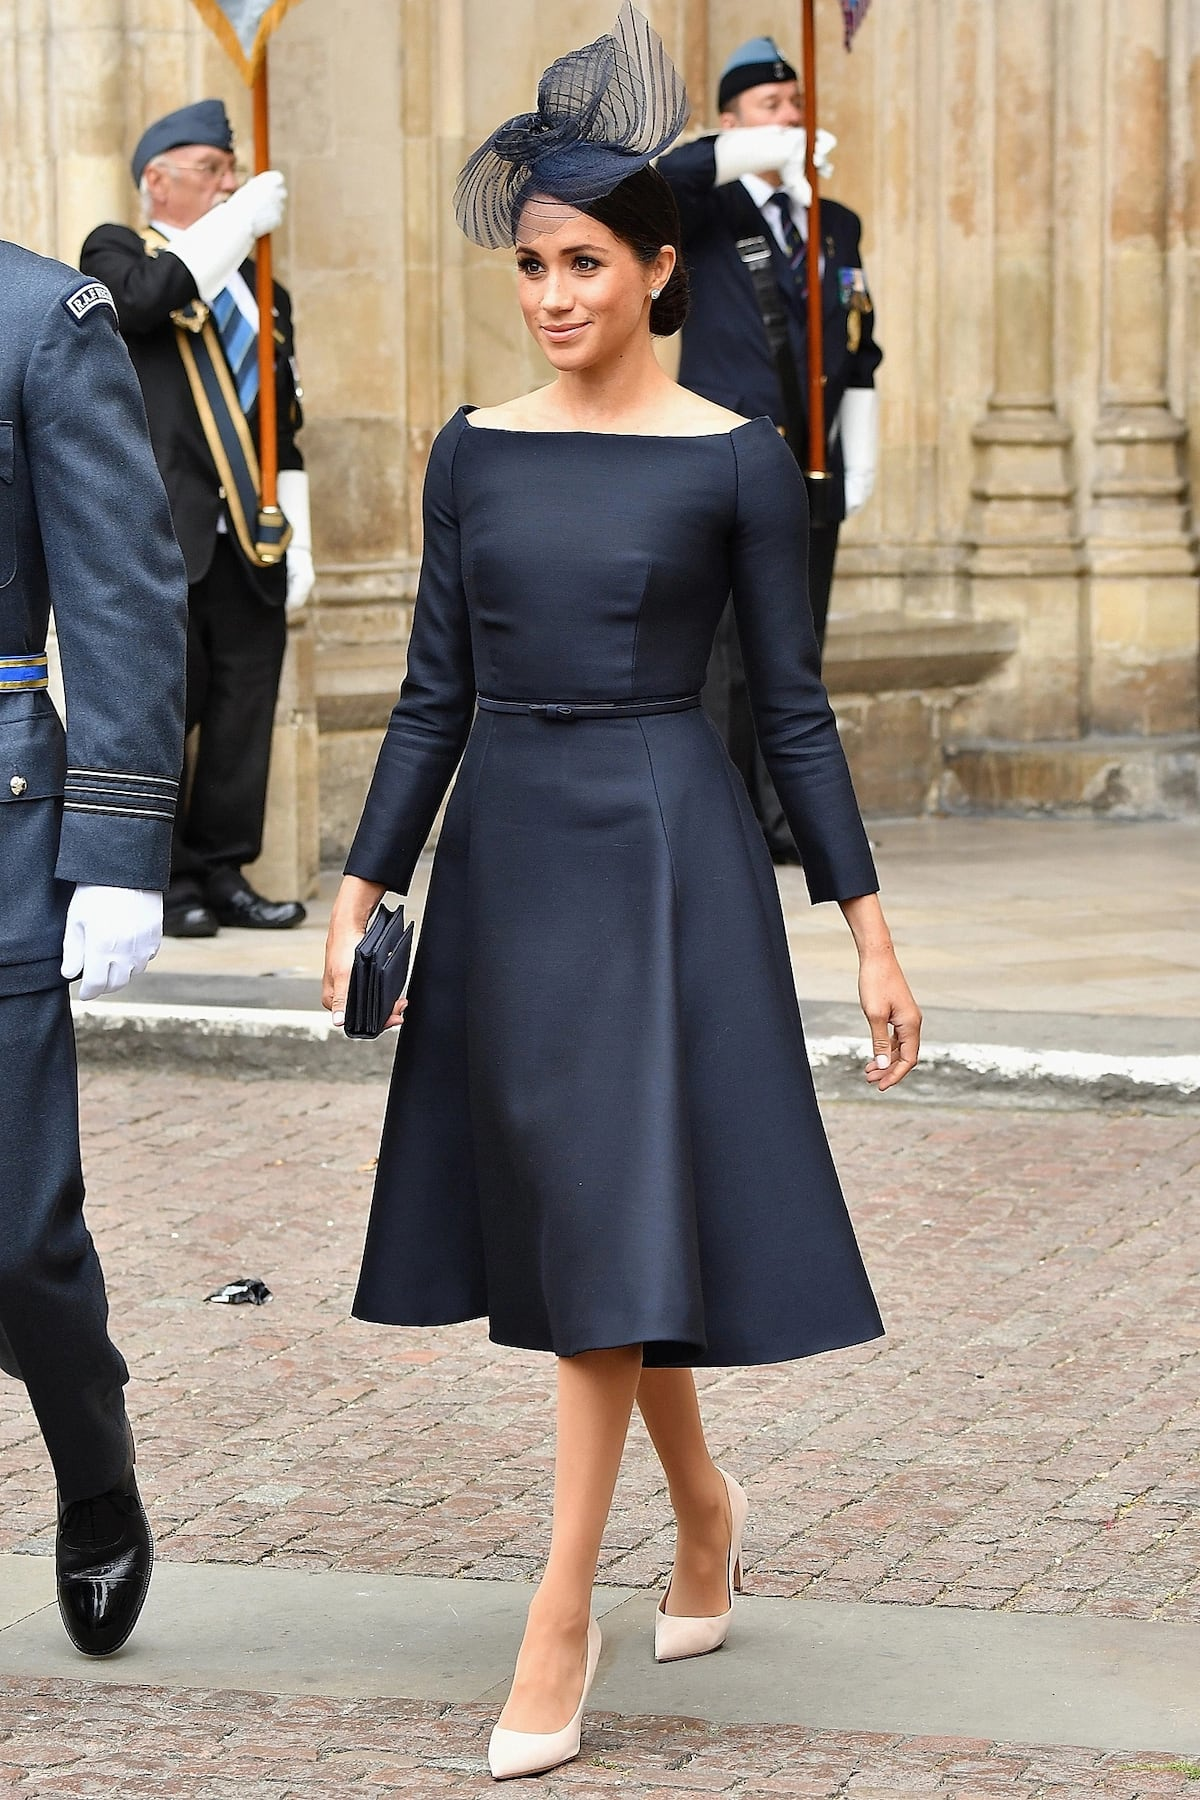 The evolution of Meghan Markle: 5 Amazing outfits she wore after marrying Prince Harry